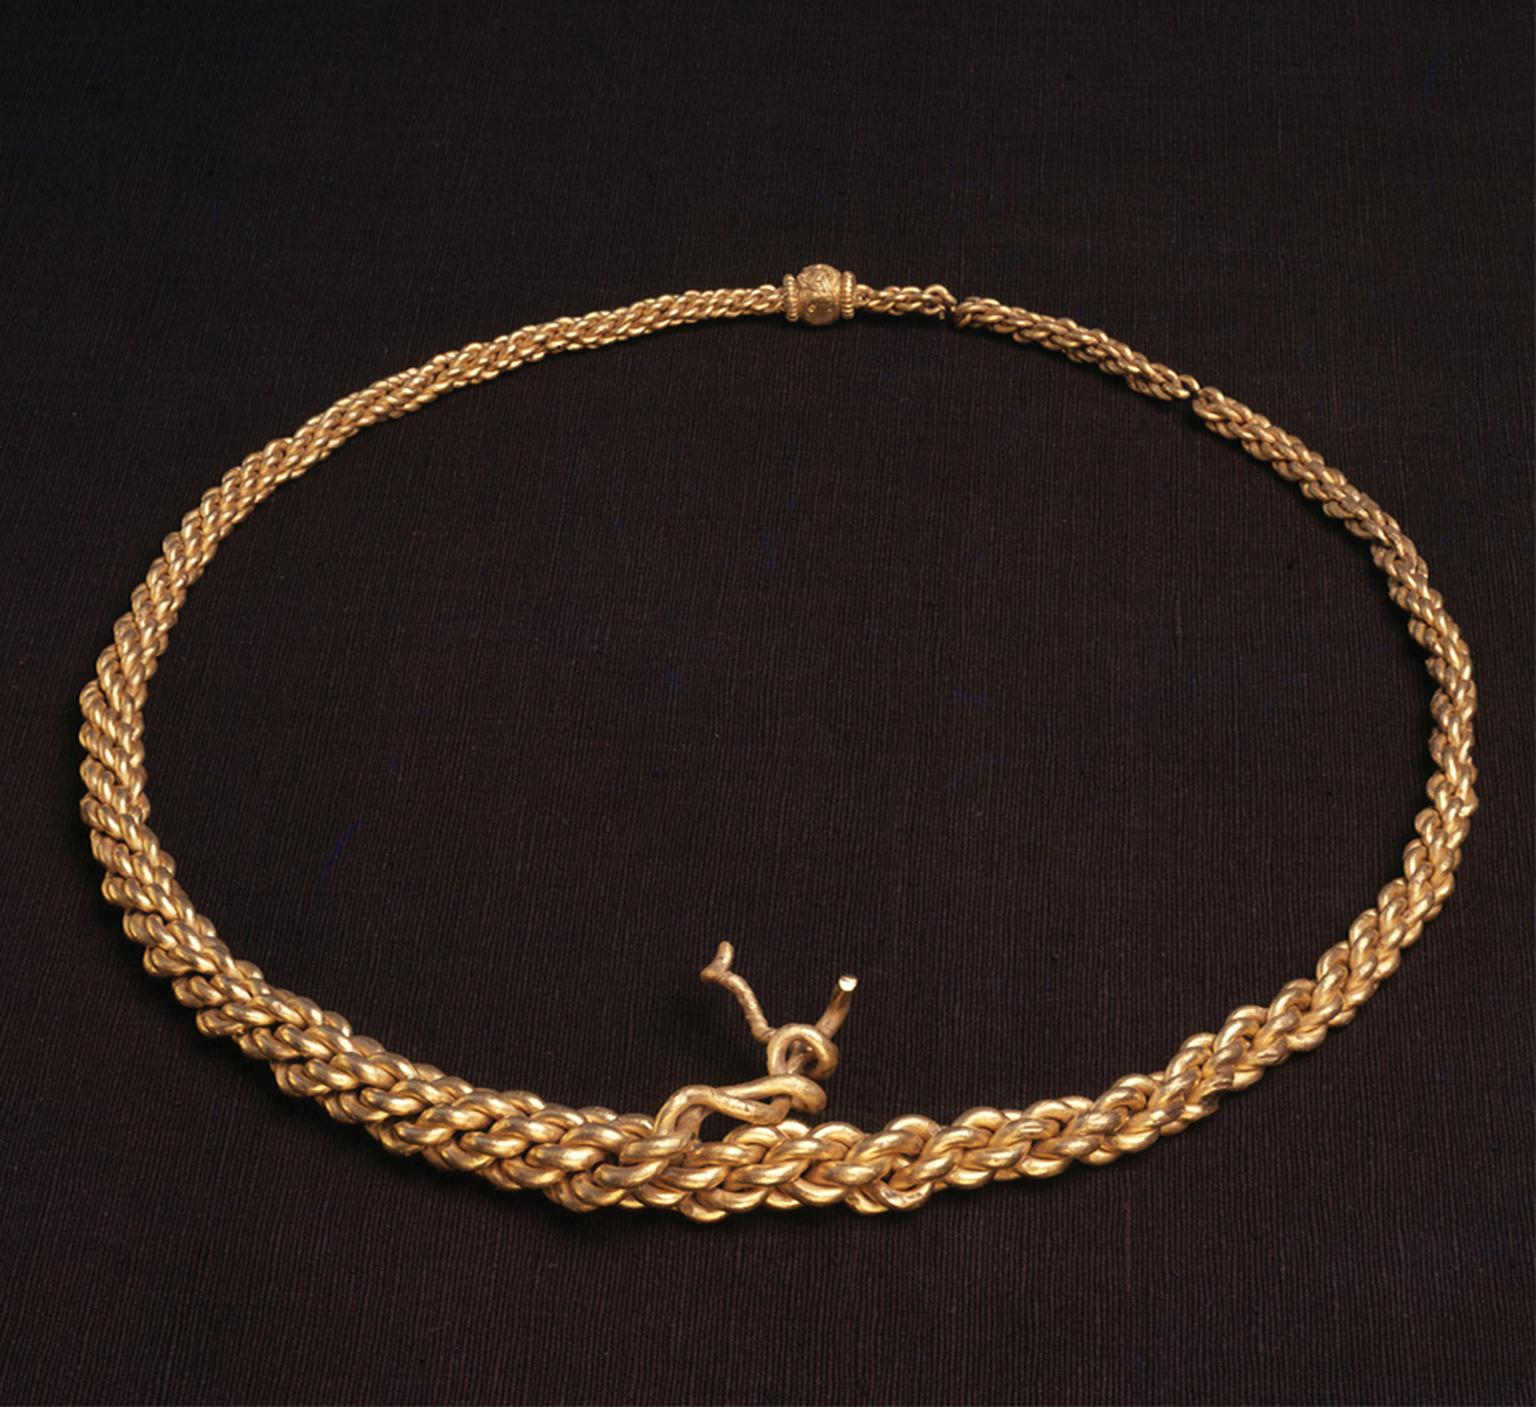 10th century gold neck-ring. Kalmergården, Tissø, Zealand, Denmark. © The National Museum of Denmark